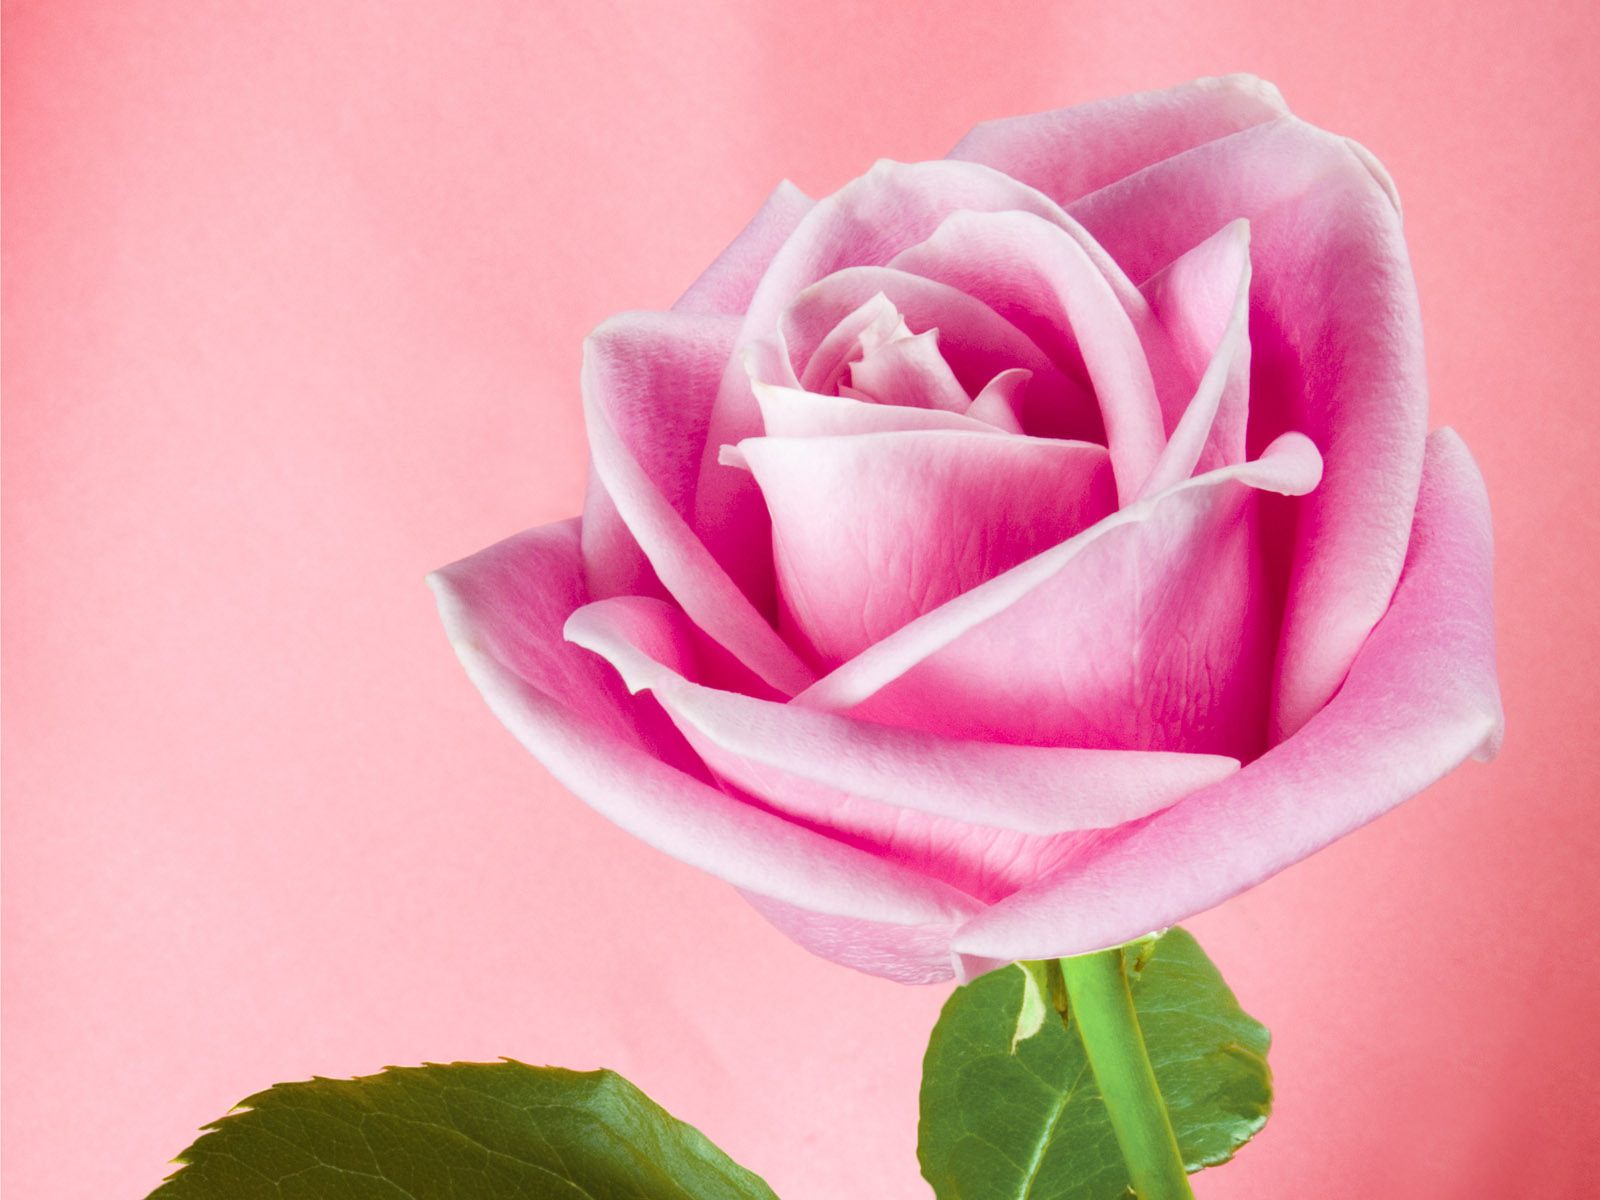 Wallpaper: Next Rosa Pink Wallpaper